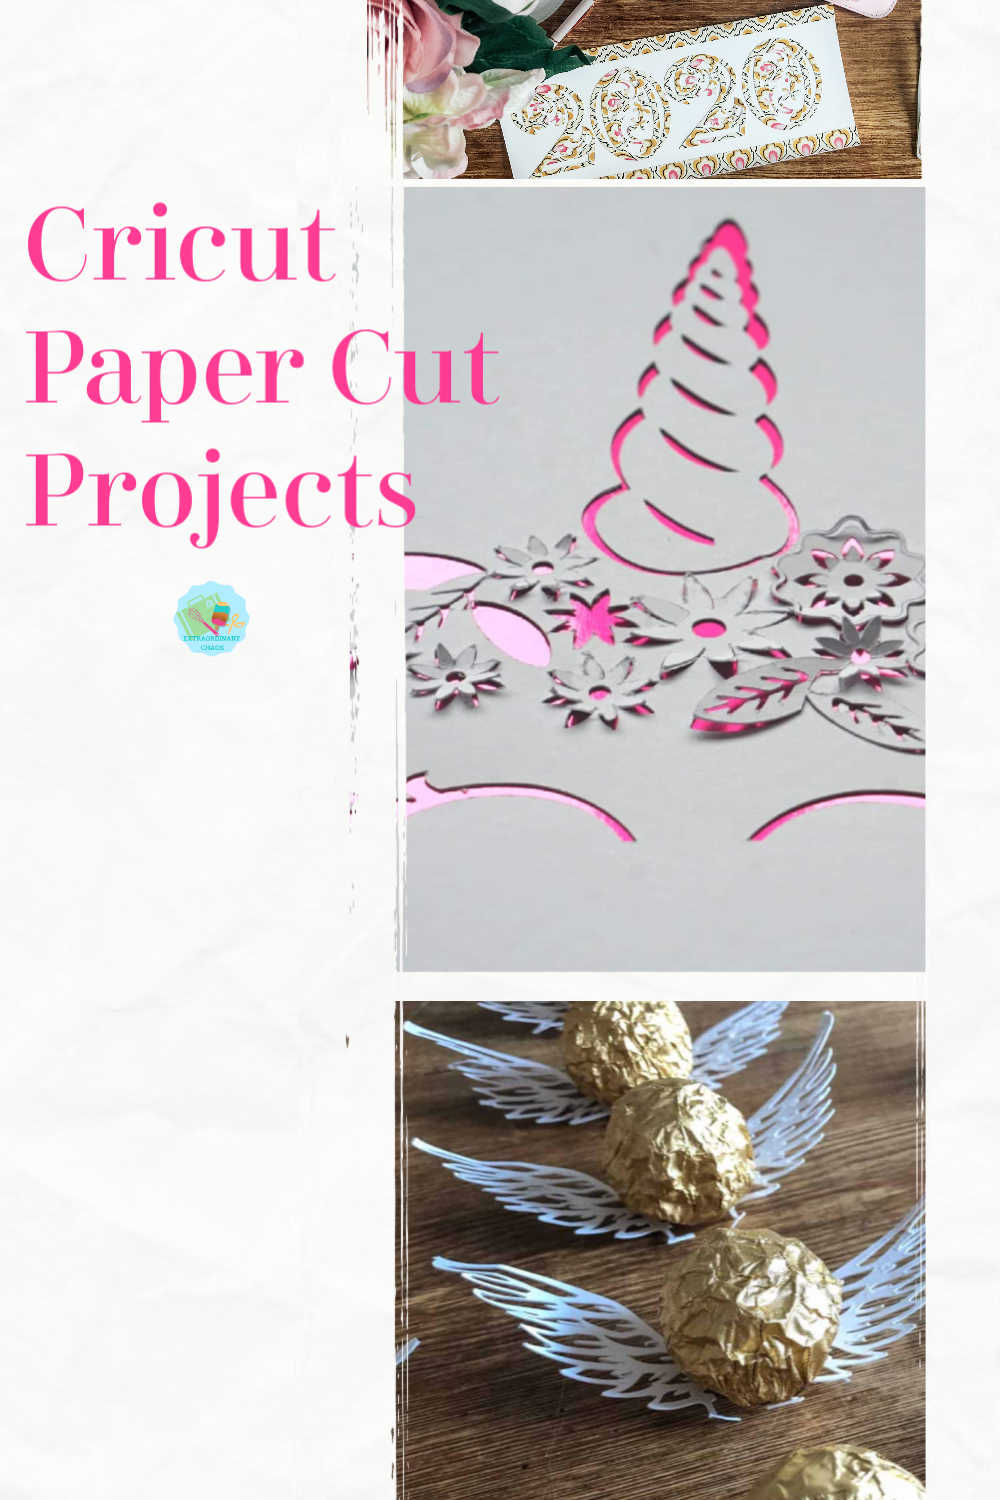 Cricut paper cut projects and tutorials to make projects for gifts and to sell.